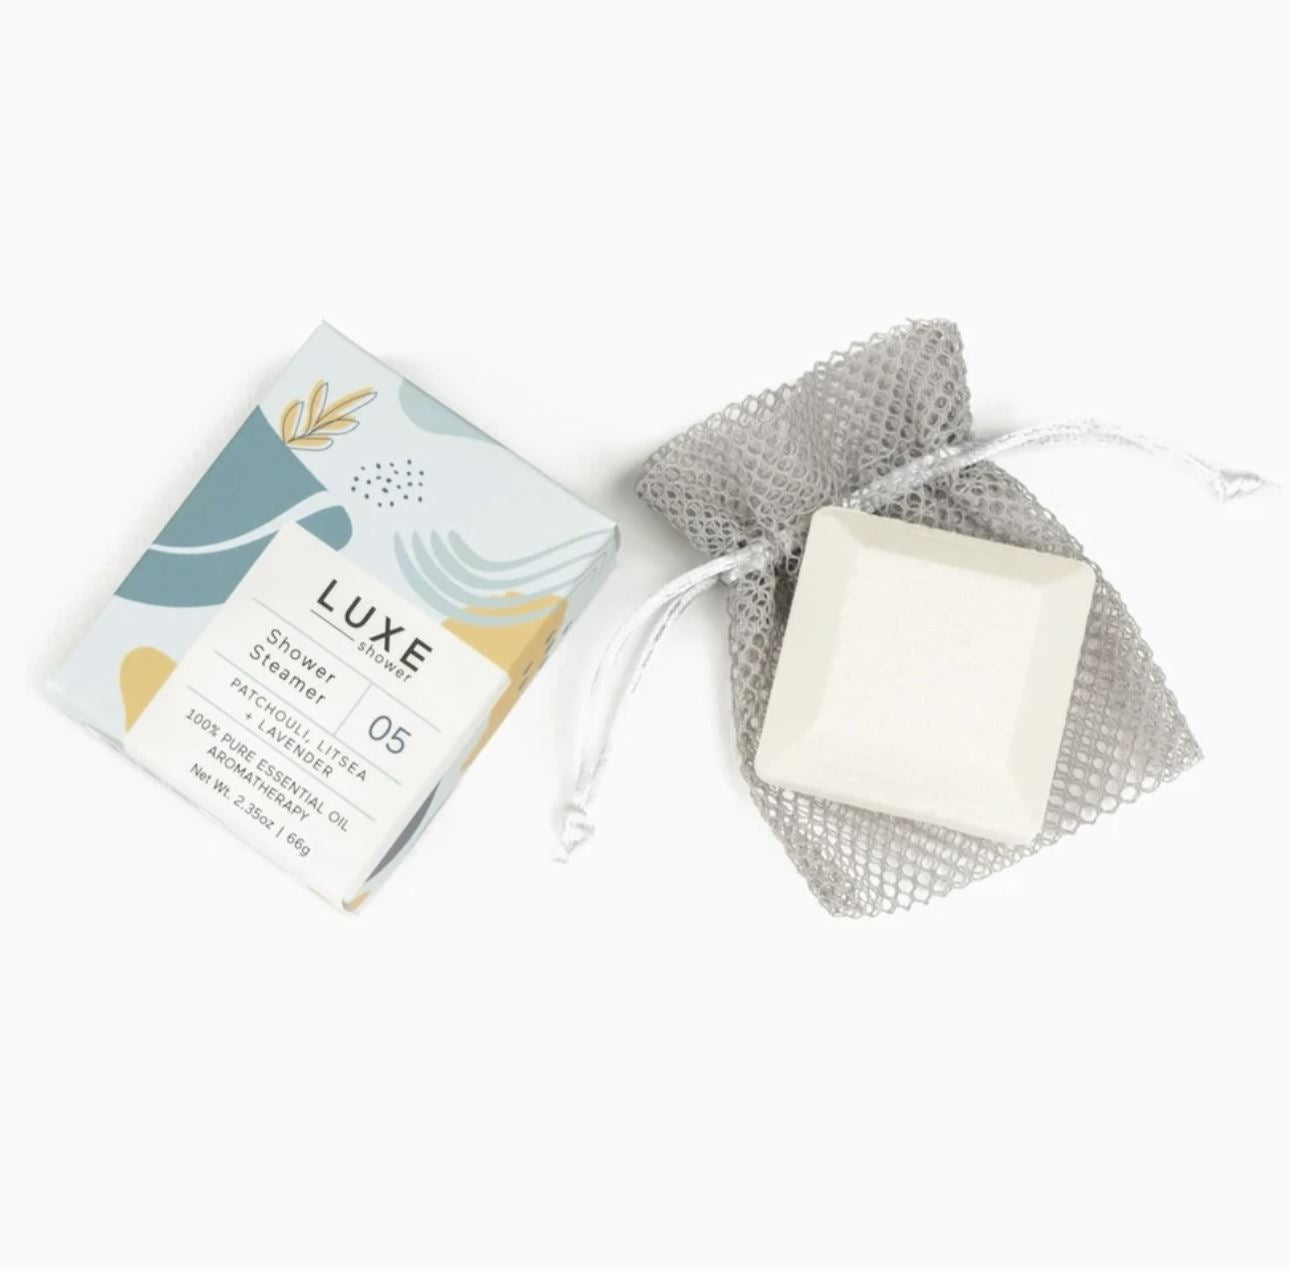 Transform your shower into a one-of-a-kind aromatherapy experience that will leave you feeling refreshed and reset. This Patchouli, Litsea & Lavender shower steamer from Cait + Co with 100% pure essential oils will relax your body, mind, and soul. Your shower will never be the same again!   Lasts for approximately 2-3 showers